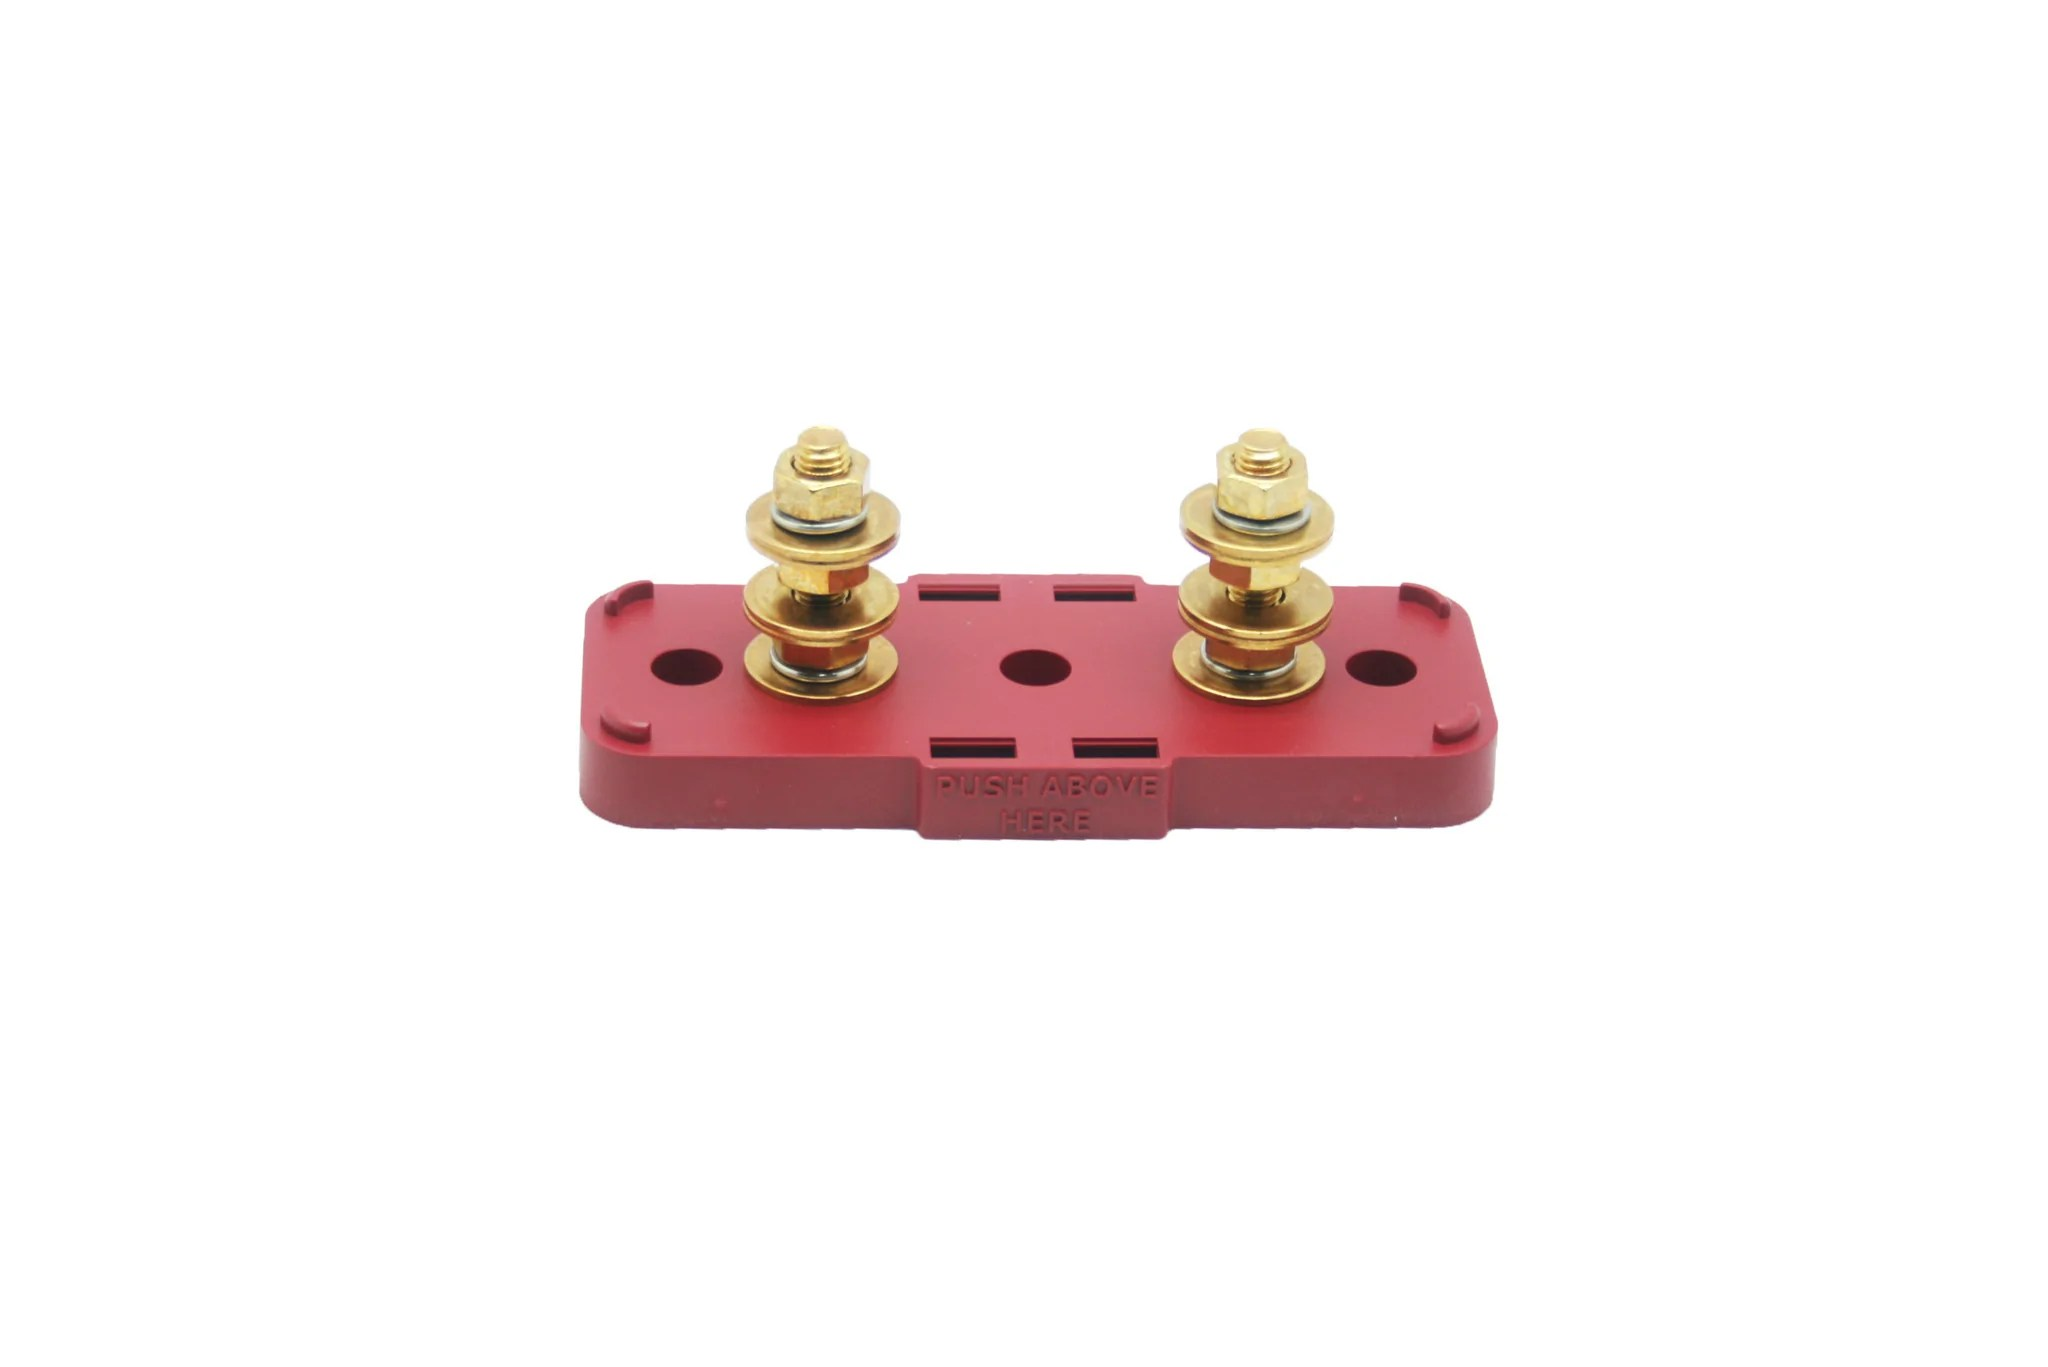 gold plated fuse holders m8 up to 500a m12 up to 1000a  [ 2048 x 1367 Pixel ]